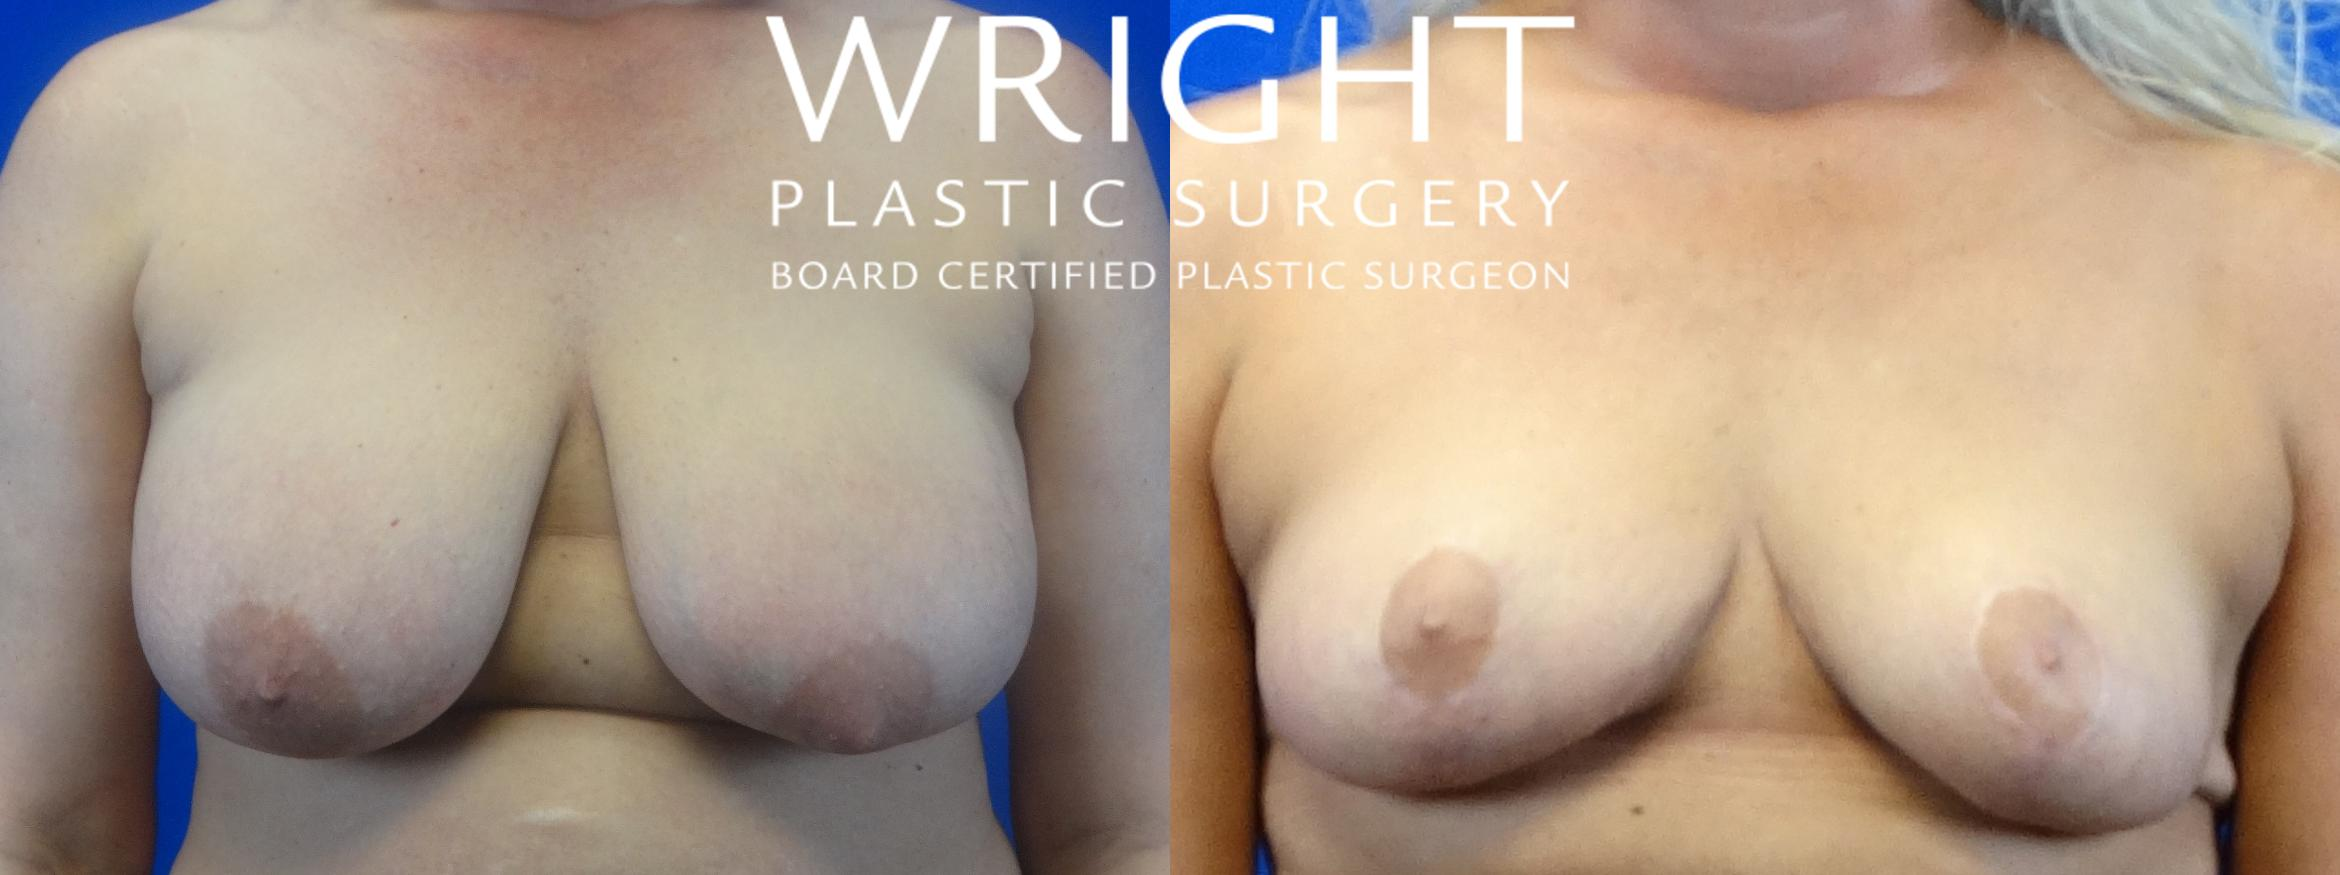 Breast Reduction Case 22 Before & After Front | Little Rock, Arkansas | Dr. Wright Plastic Surgery